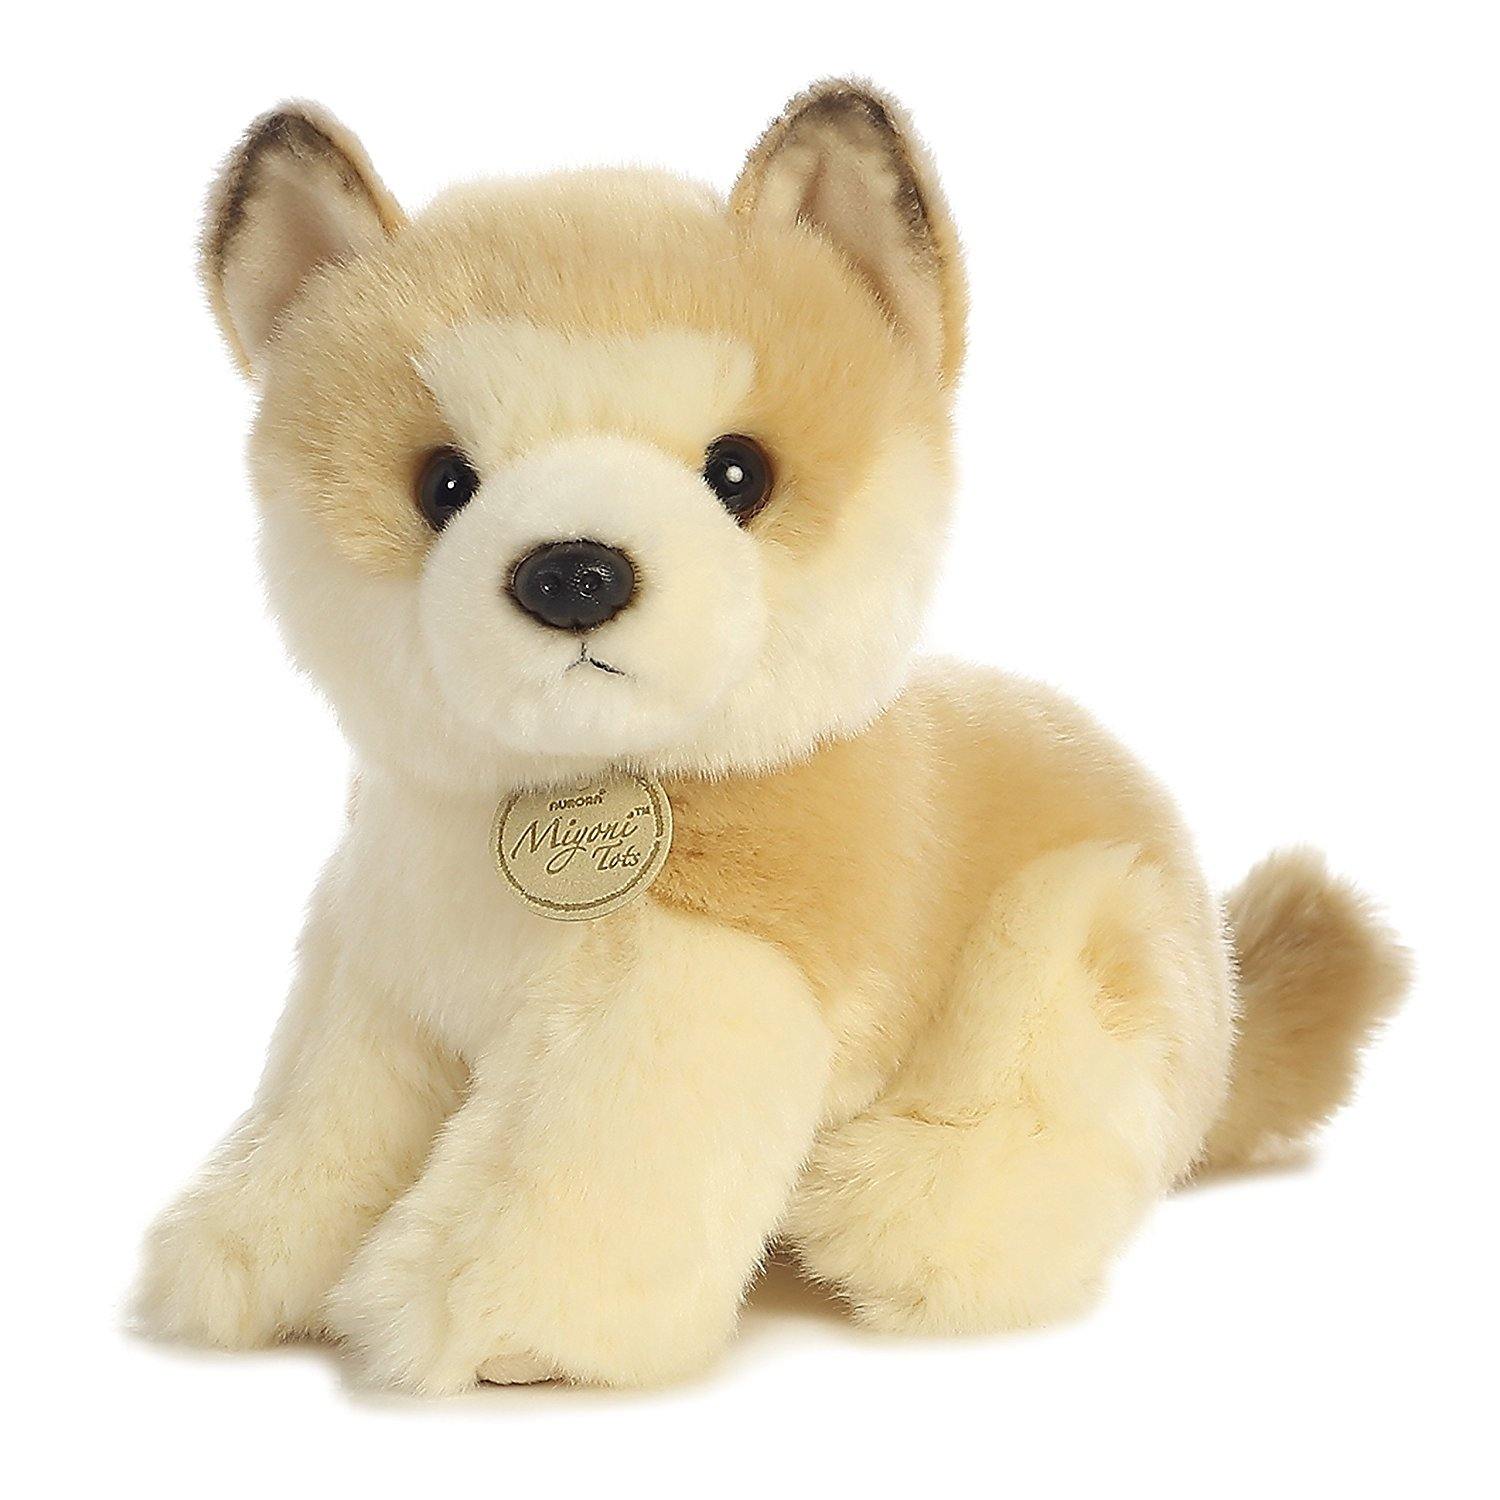 Aurora World Miyoni Tots Akita Puppy Plush 8 Tall 765326613524 Ebay